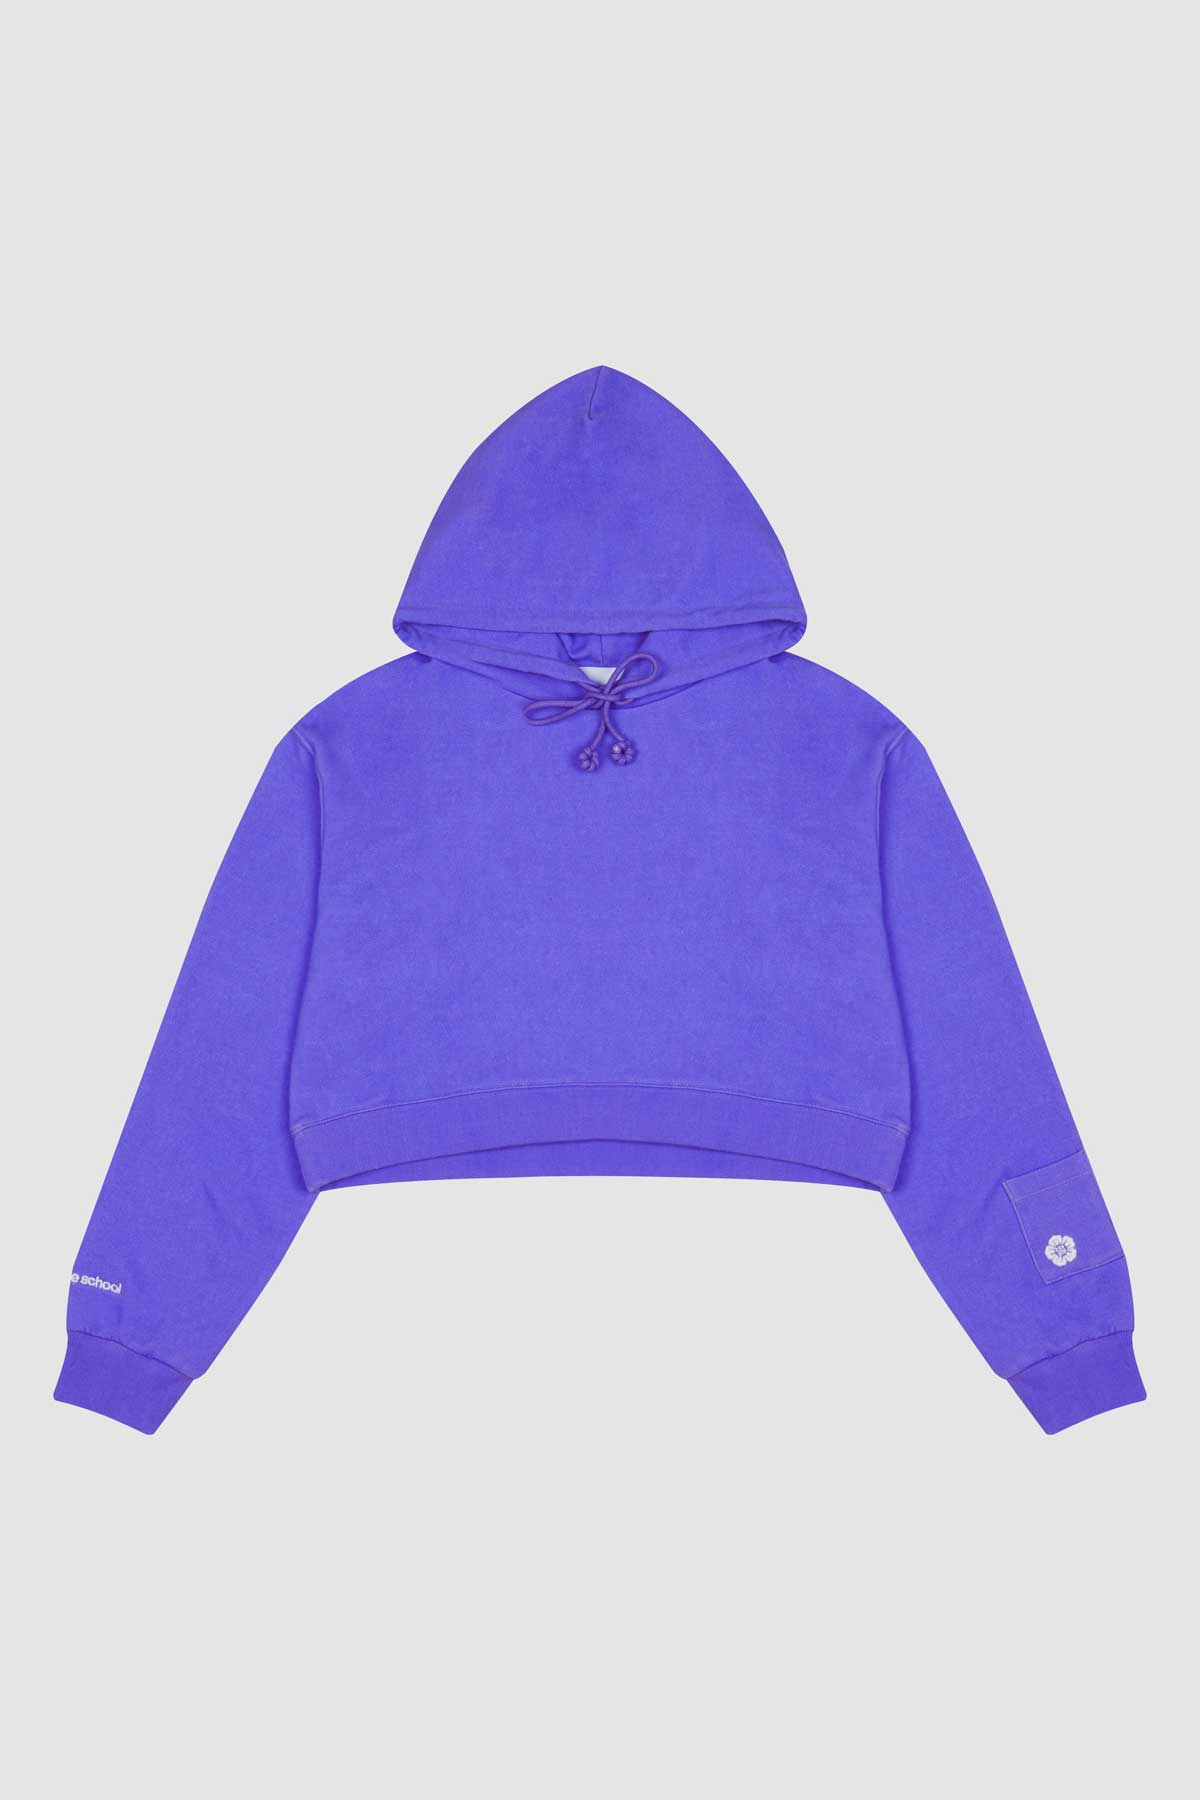 Photo of Violet Kush Women's Cropped Hoodie, number 2